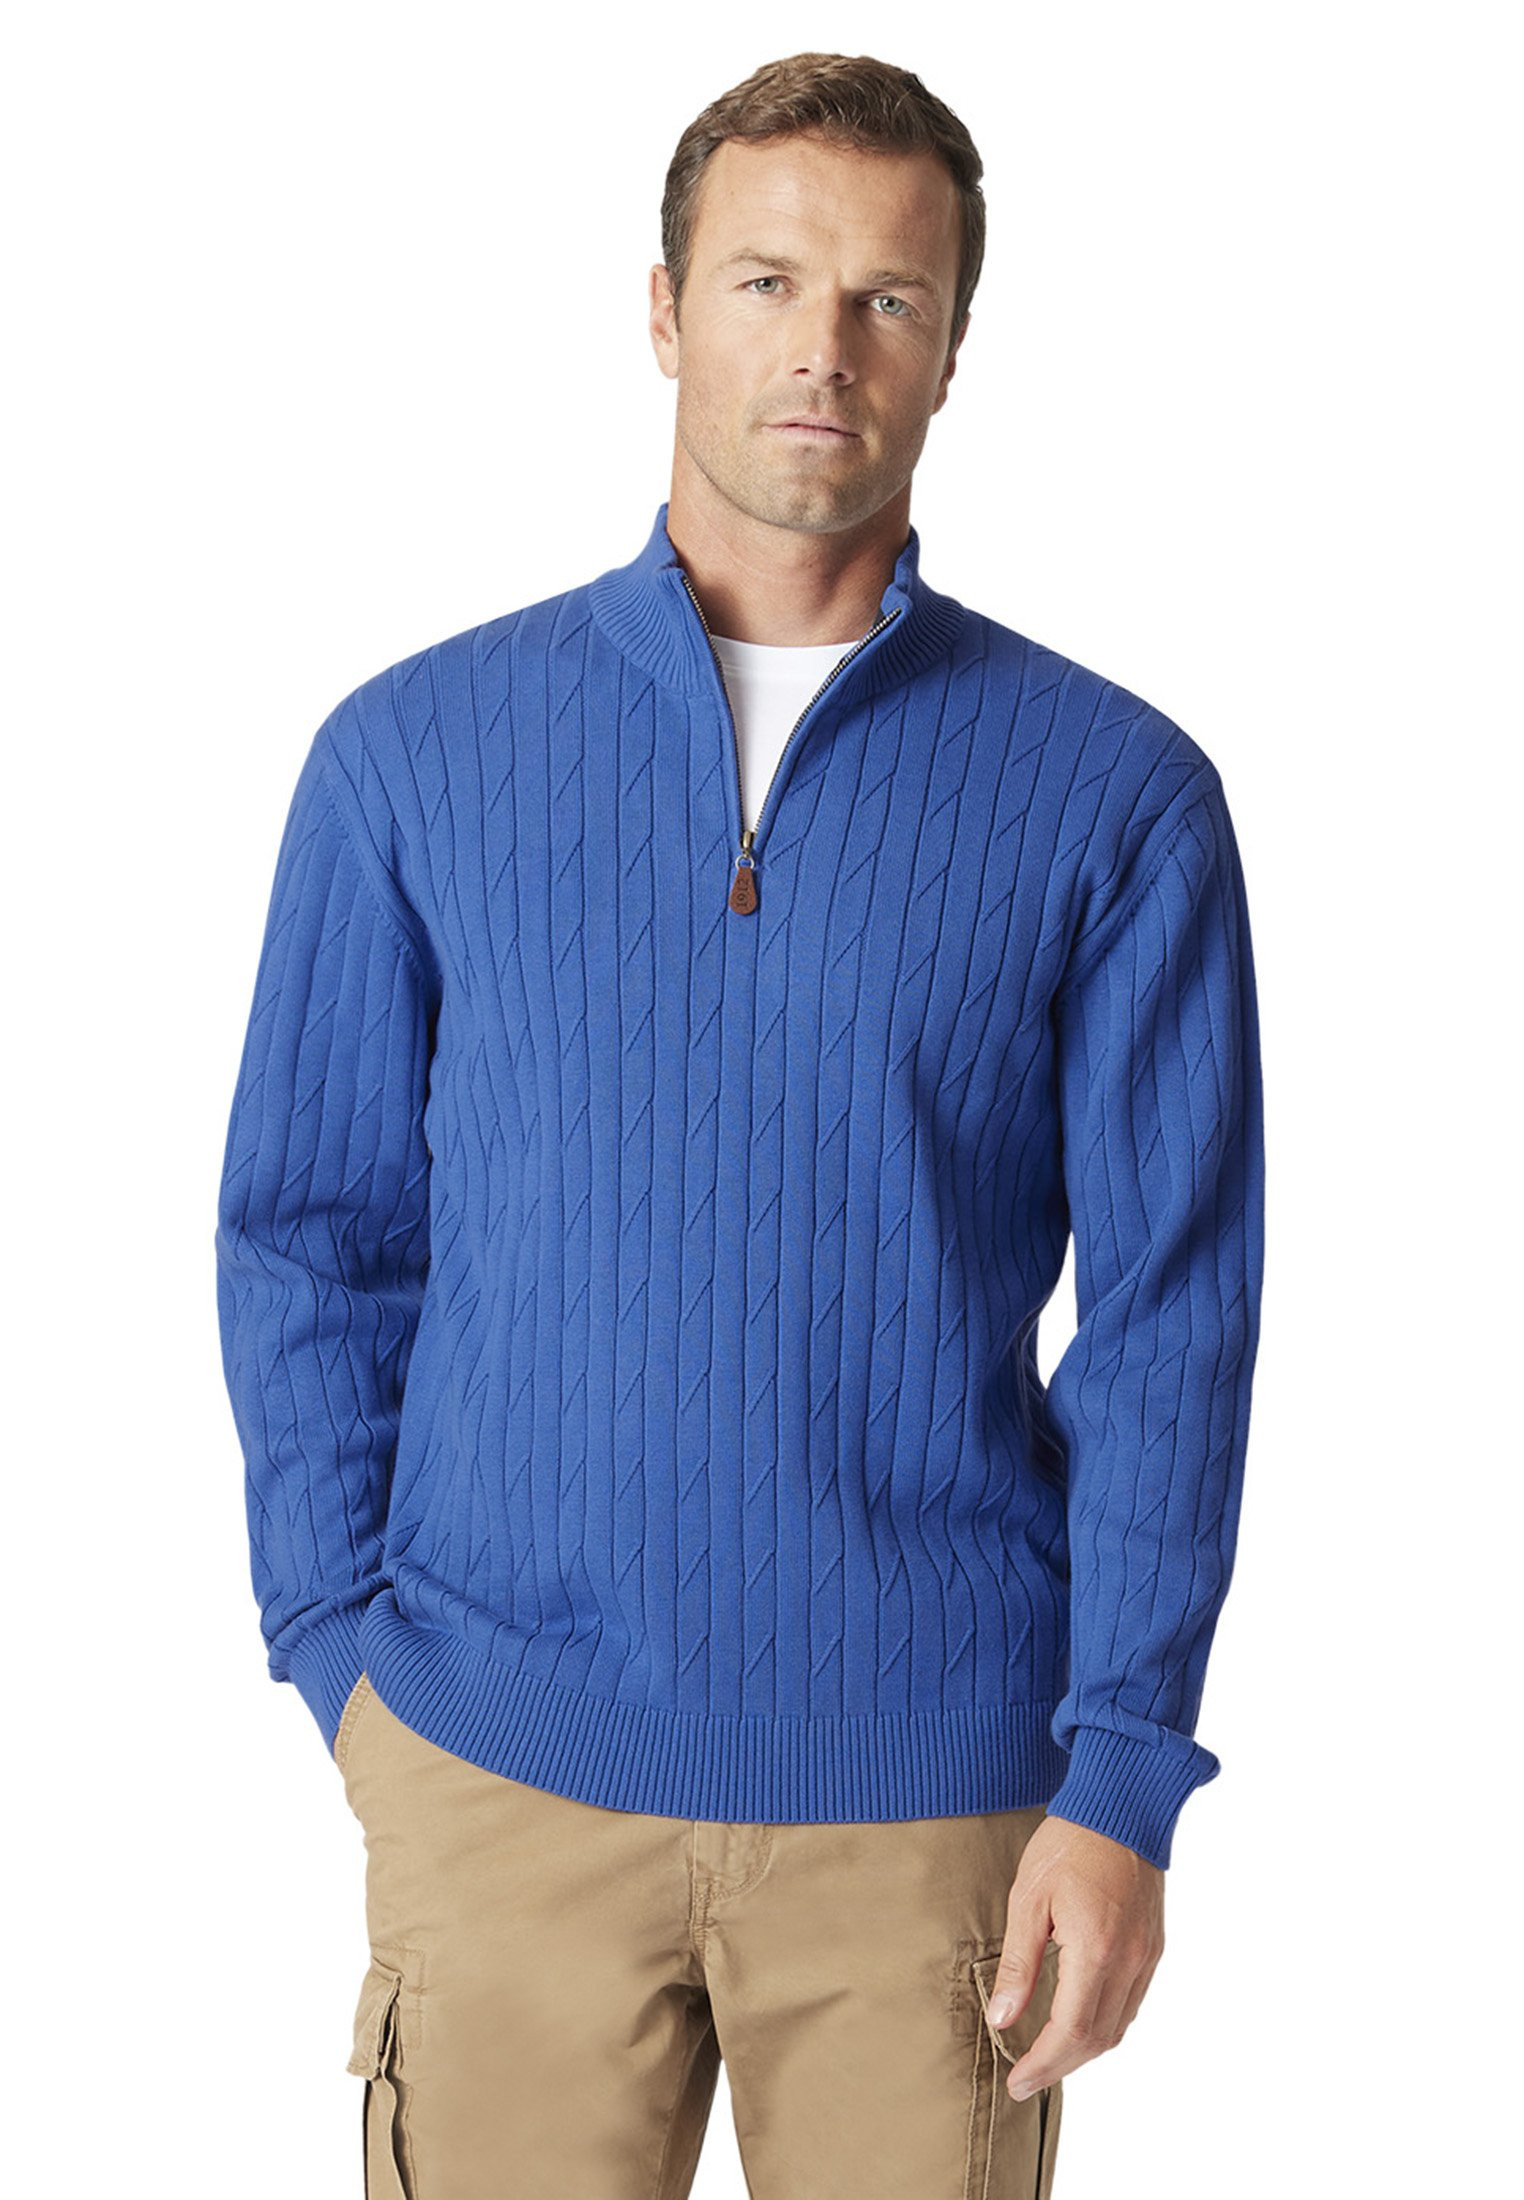 Byford Electric Blue Cable Knit Zip Neck Jumper